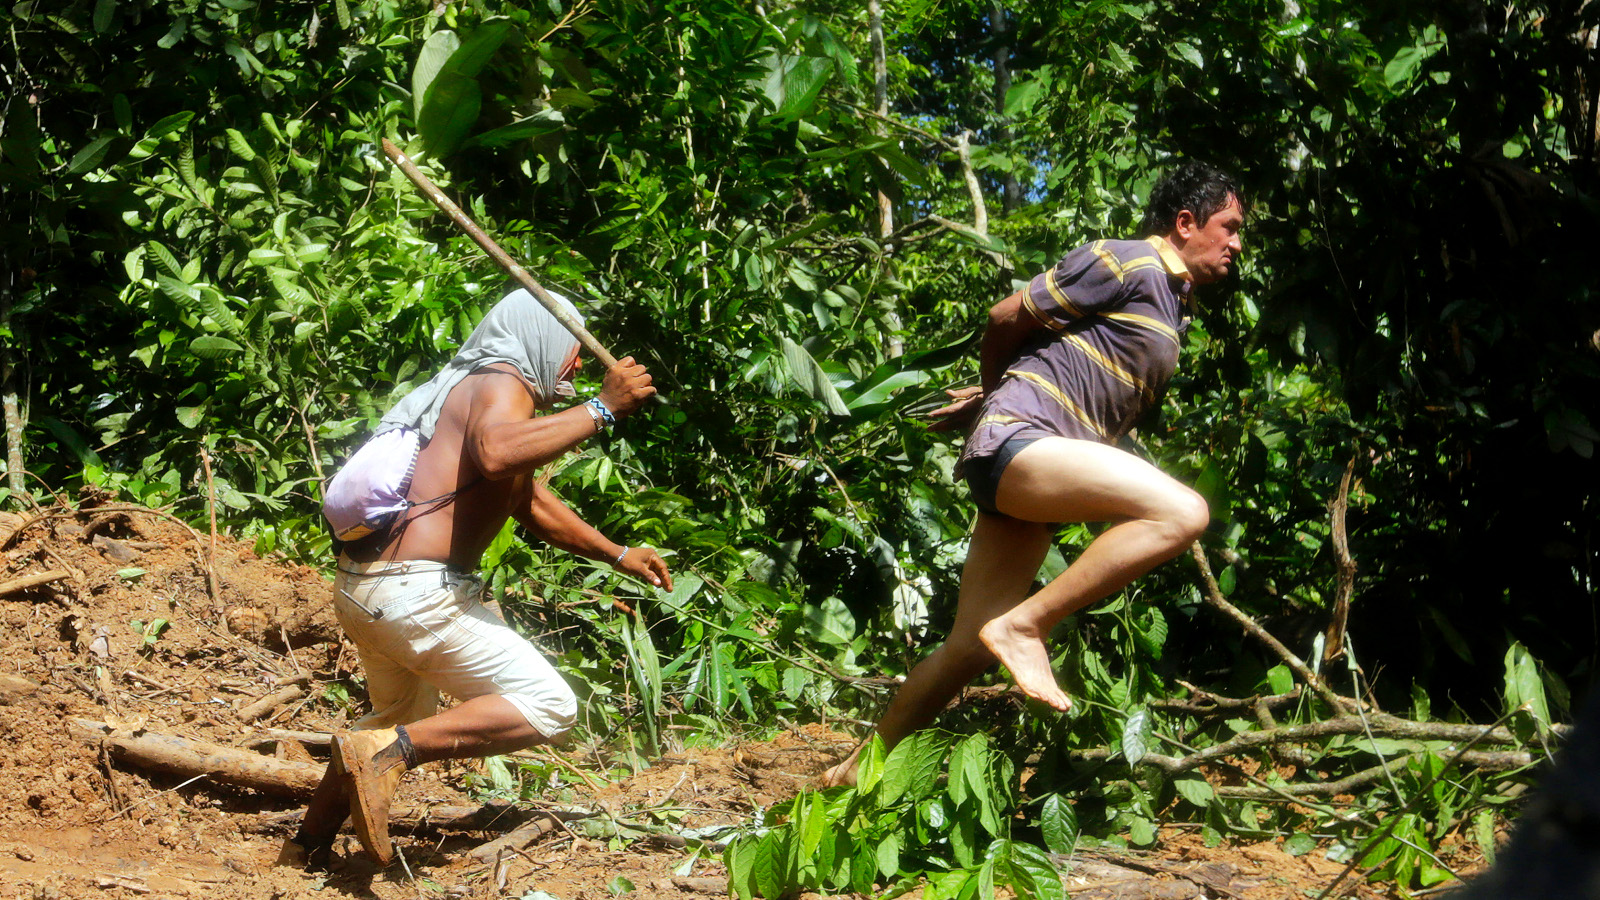 A Ka'apor Indian warrior (L) chases a logger who tried to escape after he was captured during a jungle expedition to search for and expel loggers from the Alto Turiacu Indian territory, near the Centro do Guilherme municipality in the northeast of Maranhao state in the Amazon basin, August 7, 2014. Tired of what they say is a lack of sufficient government assistance in keeping loggers off their land, the Ka'apor Indians, who along with four other tribes are the legal inhabitants and caretakers of the territory, have sent their warriors out to expel all loggers they find and set up monitoring camps in the areas that are being illegally exploited. Picture taken August 7, 2014.